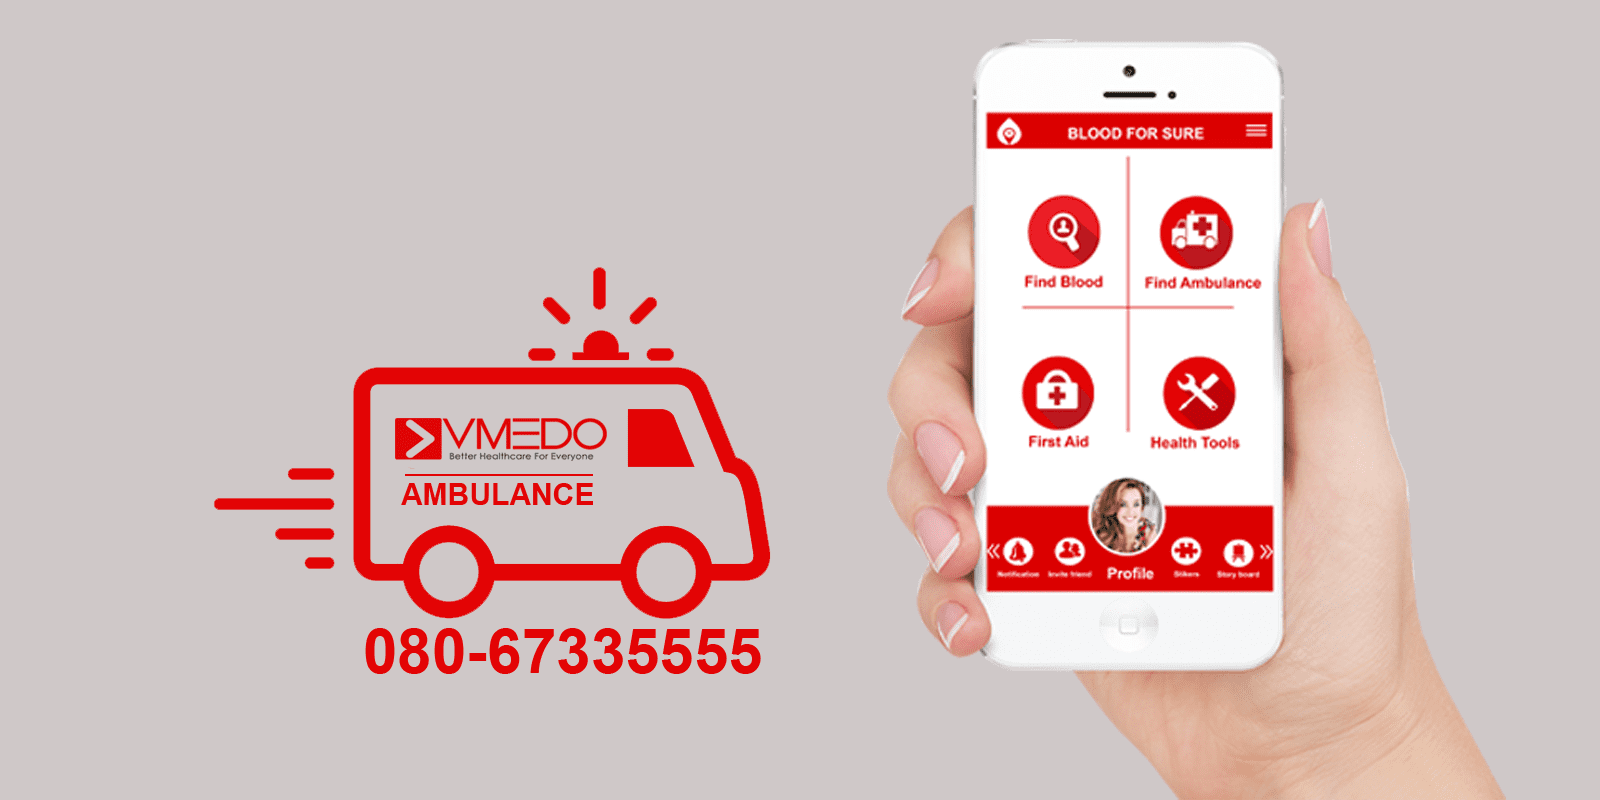 vmedo-ambulance app